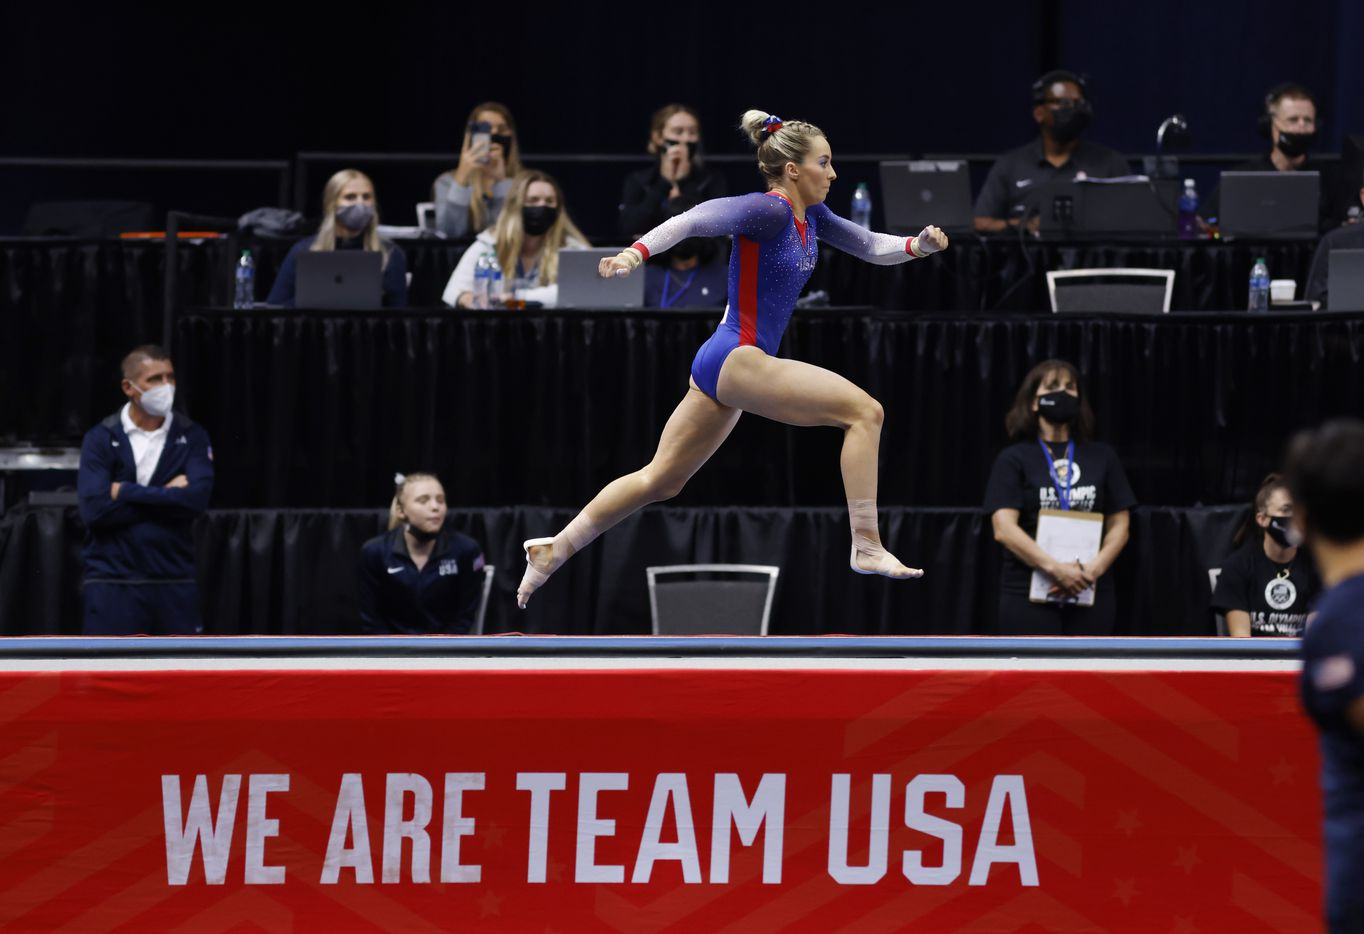 MyKayla Skinner competes on the vault during day 2 of the women's 2021 U.S. Olympic Trials at The Dome at America's Center on Saturday, June 27, 2021 in St Louis, Missouri.(Vernon Bryant/The Dallas Morning News)